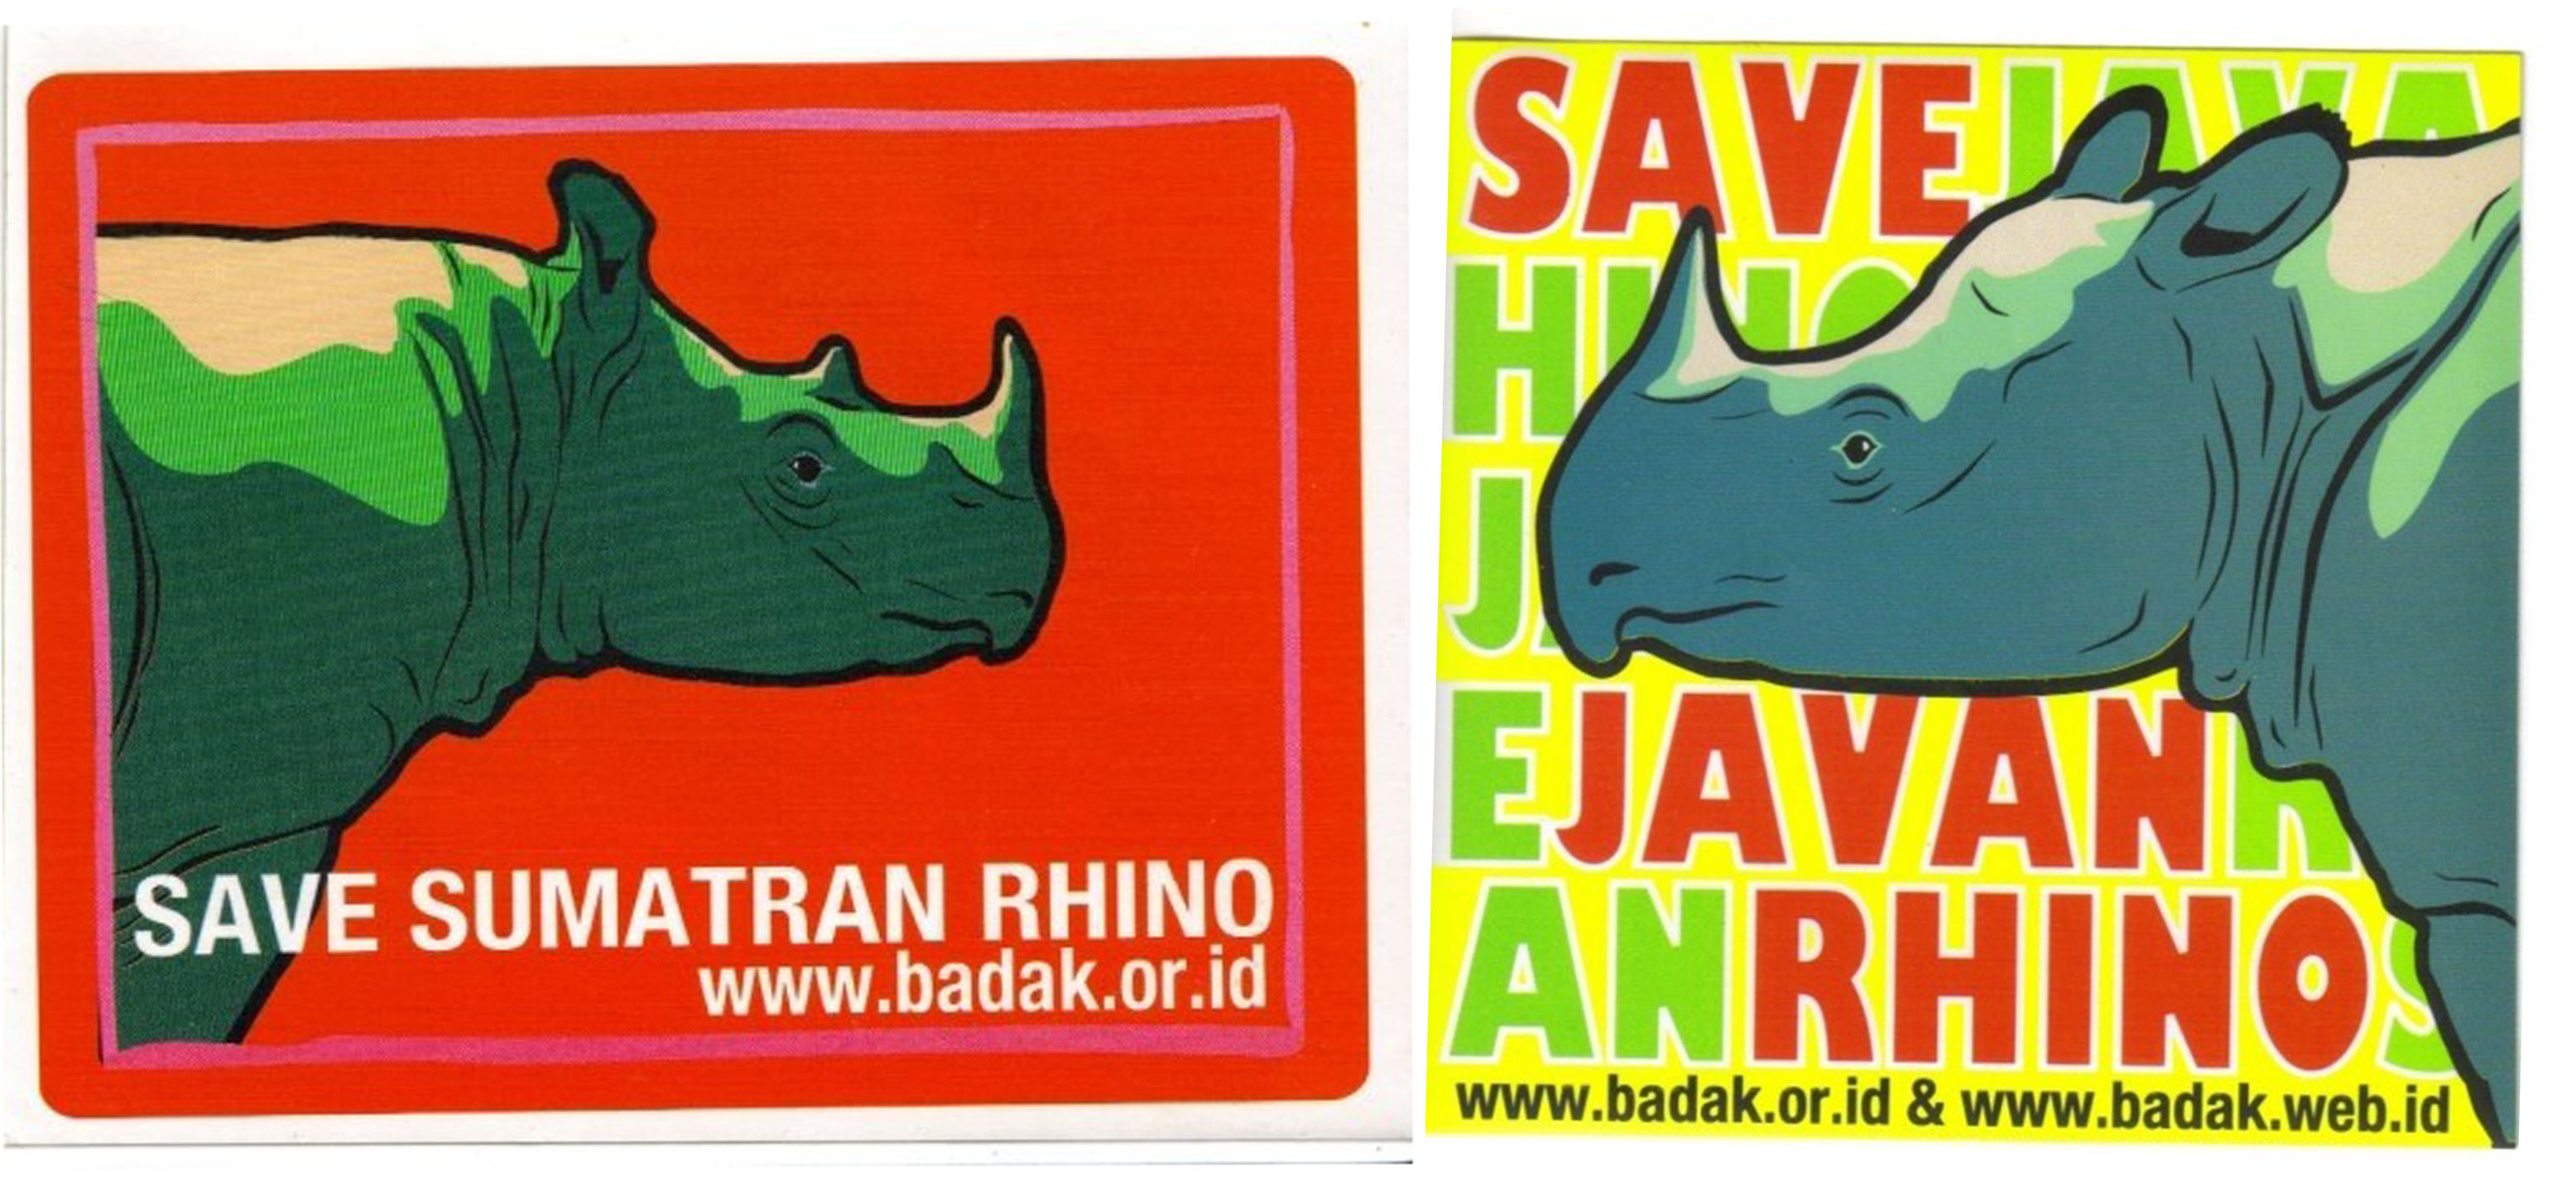 Stickers produced by Yayasan Badak Indonesia (the Rhino Foundation of Indonesia) around 2005 promoting the conservation of the Sumatran rhino and the Javan rhino. Images from the Rhino Resource Centre